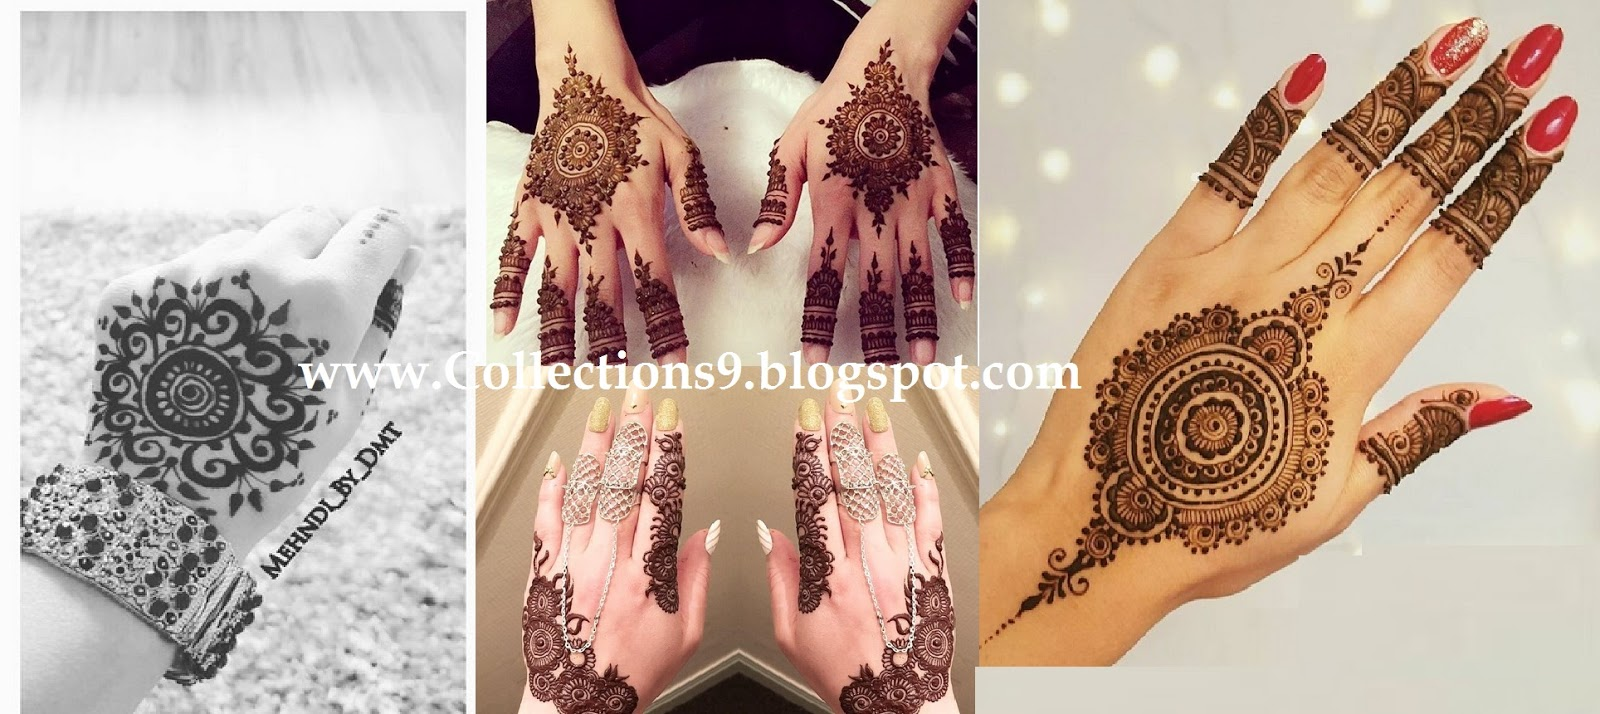 Mehndi design 2017 eid - Mehndi Is Produced From Henna And It Is Attained From Specific Leaves Simply No Girl Can Think About Her Eid